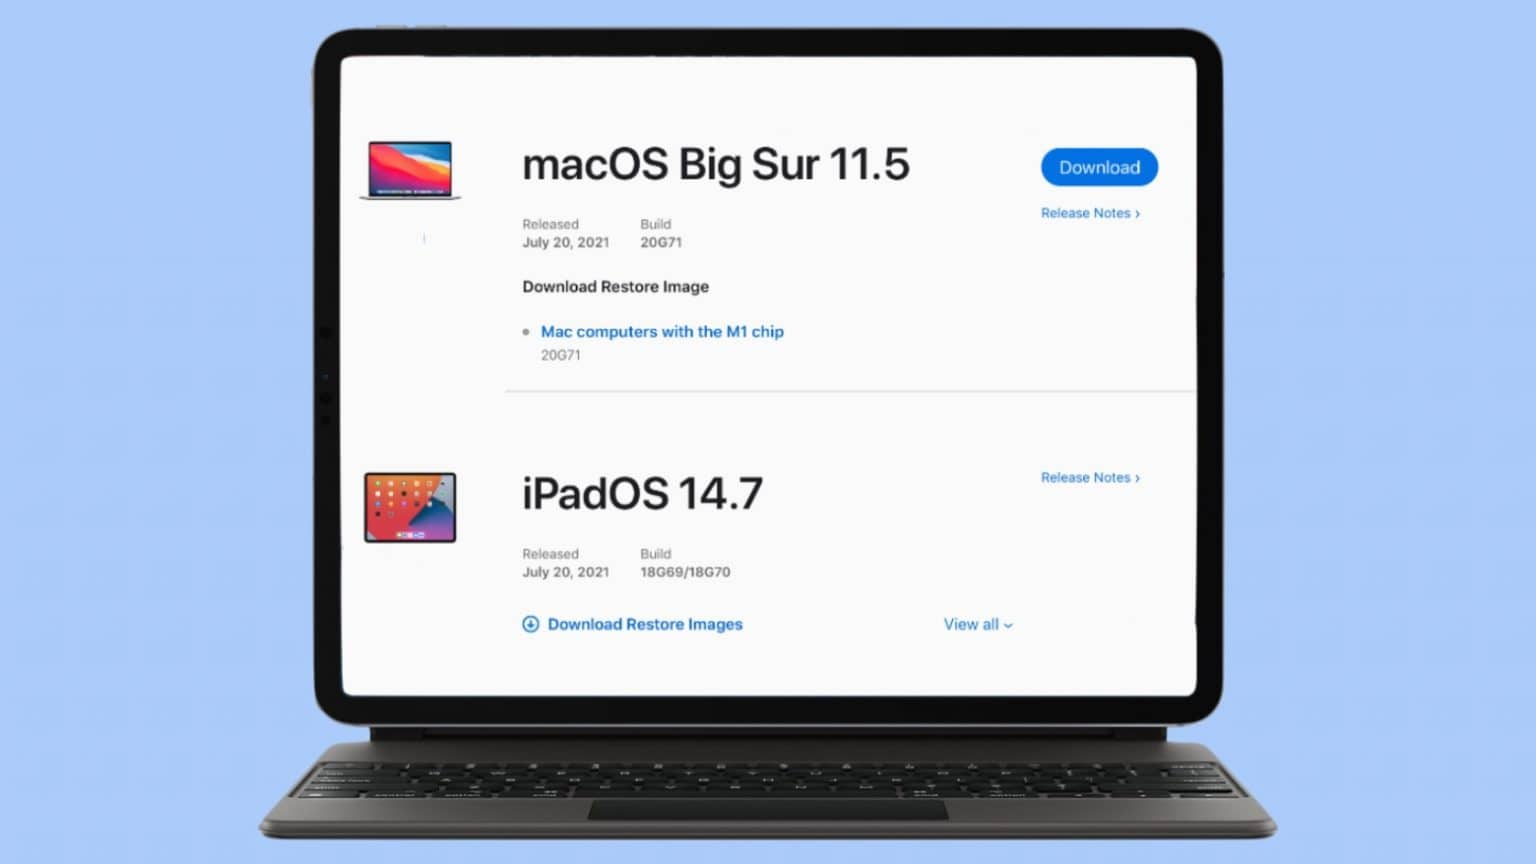 macOS Big Sur 11.5 and iPadOS 14.7 offer small tweaks and bug fixes